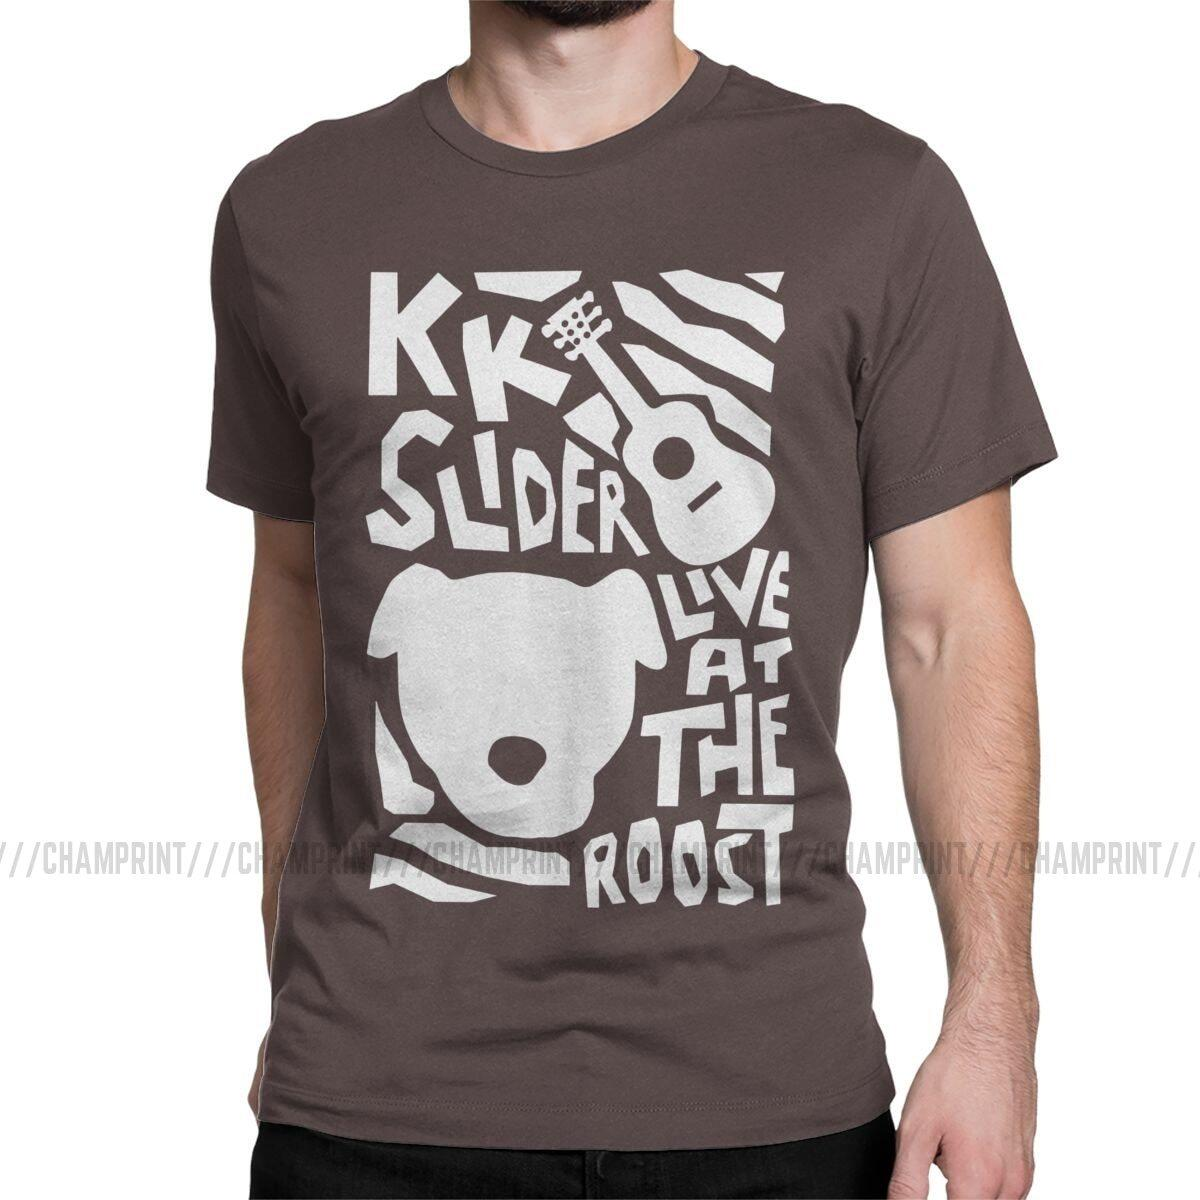 KK Slider Live at The Roost Shirt, Brown / 4XL